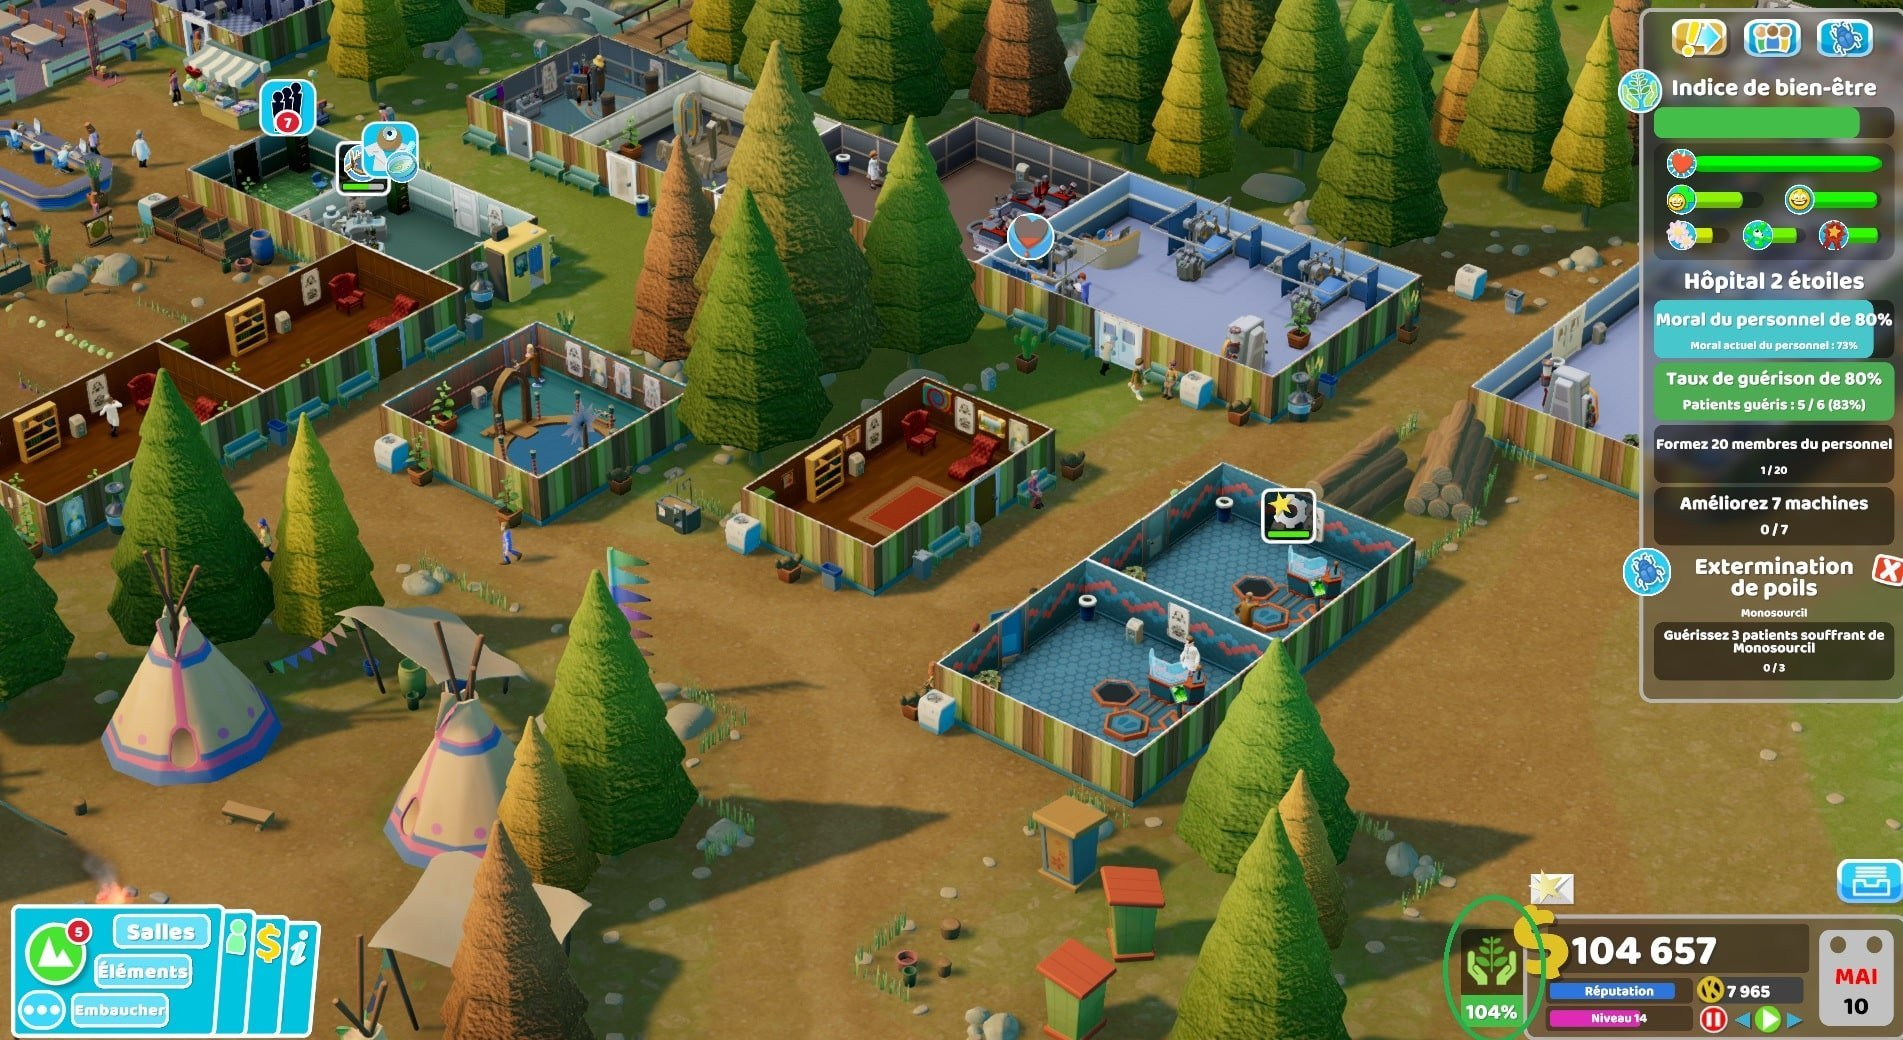 Test Two Point Hospital : Off the Grid image d'un hôpital en plein air